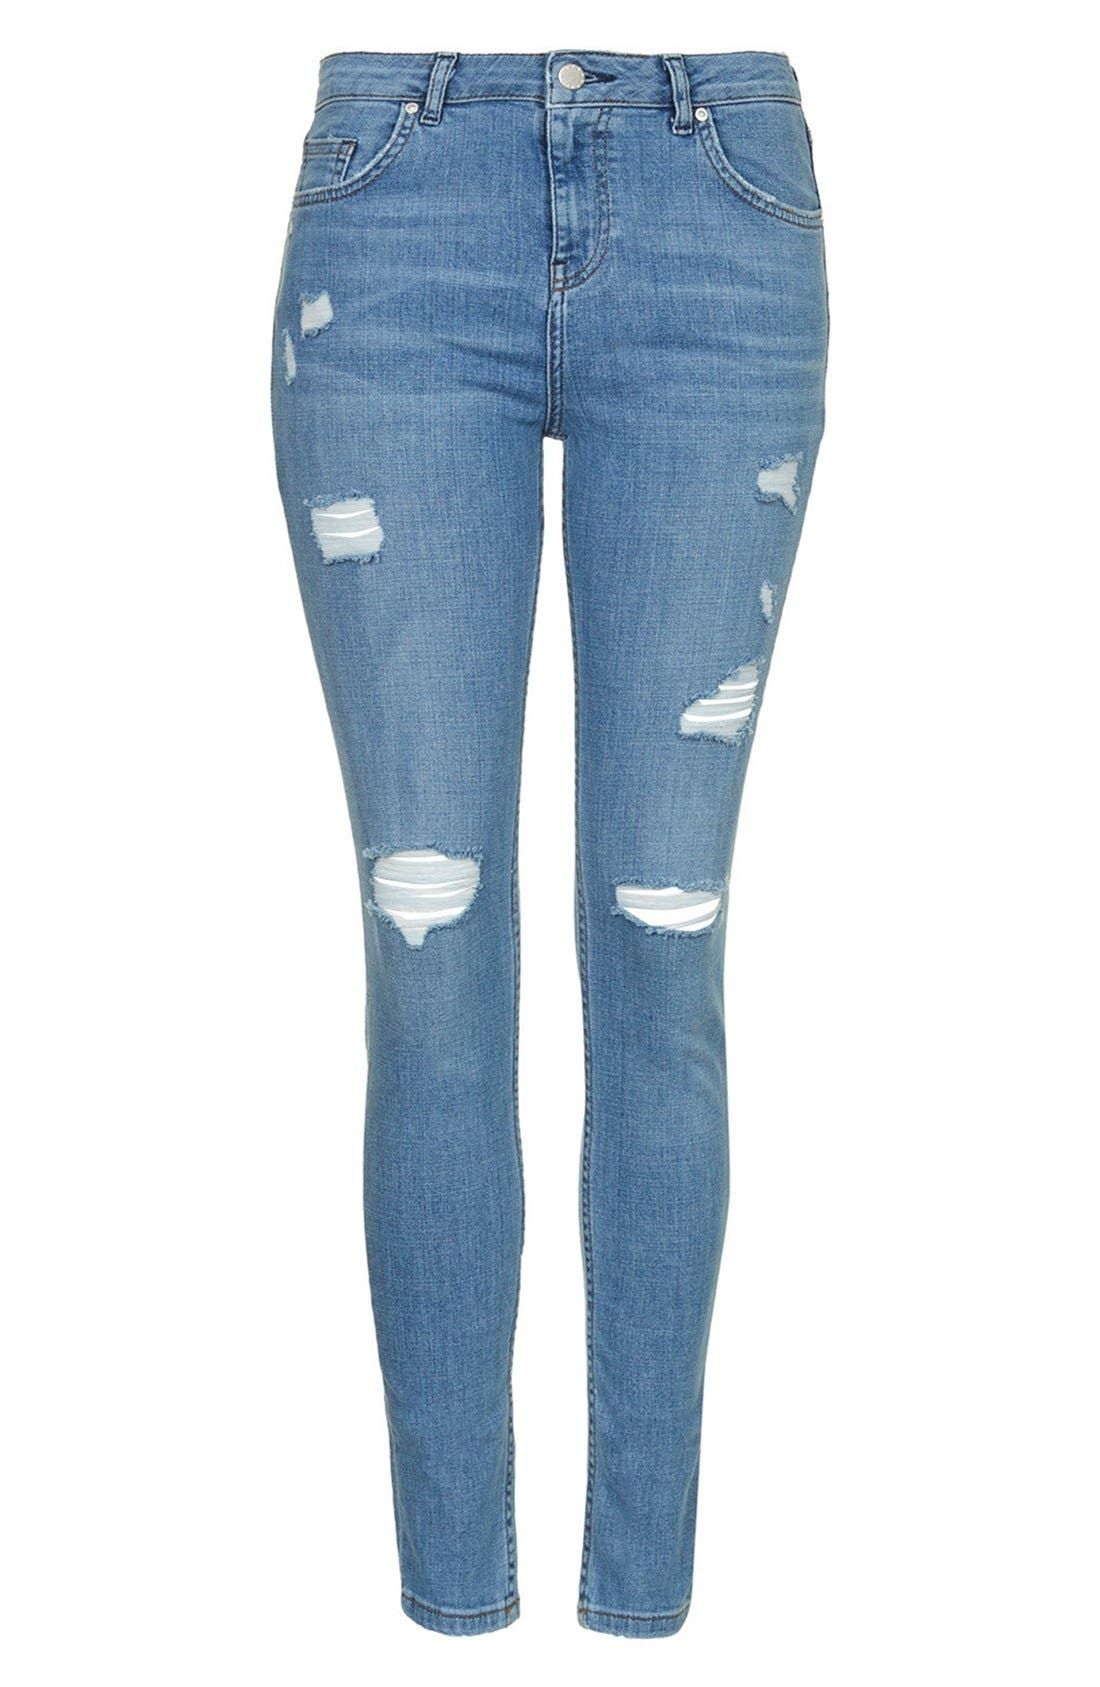 Alternate Image 3  - Topshop Moto High Rise Ripped Jeans (Light Denim) (Short)